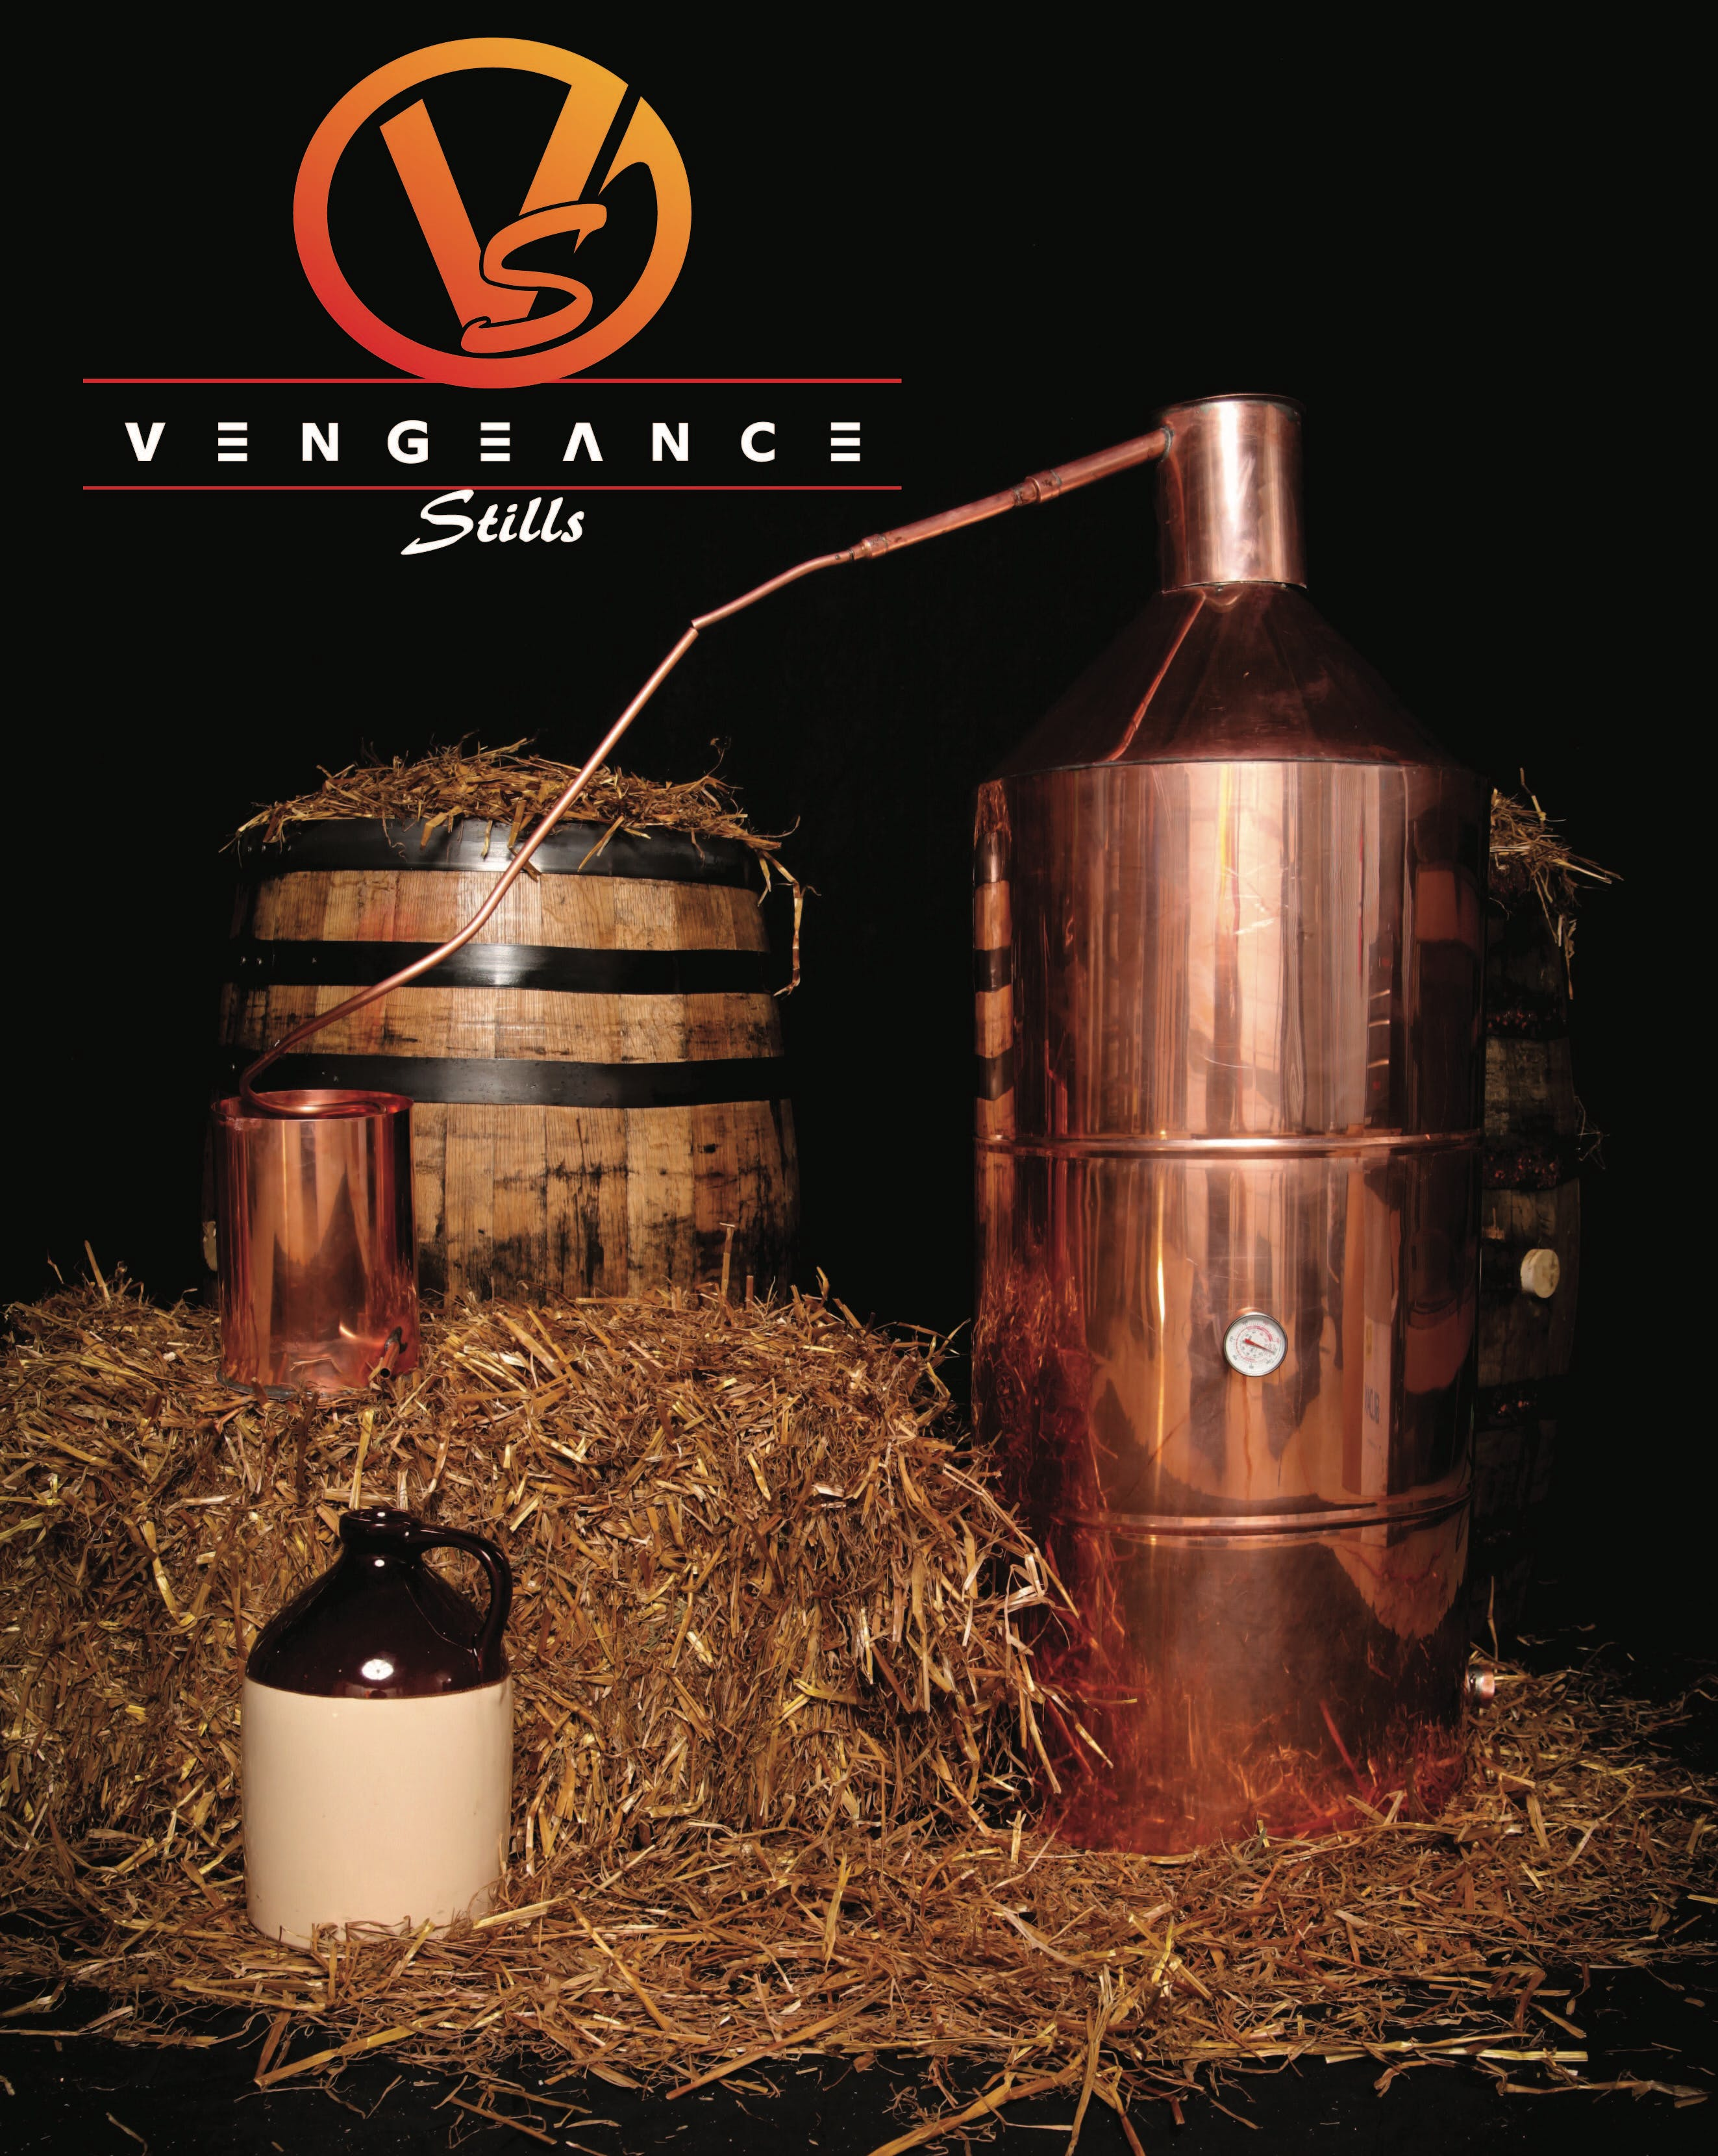 40 gallon pot still Distillation still sold by Vengeance Stills